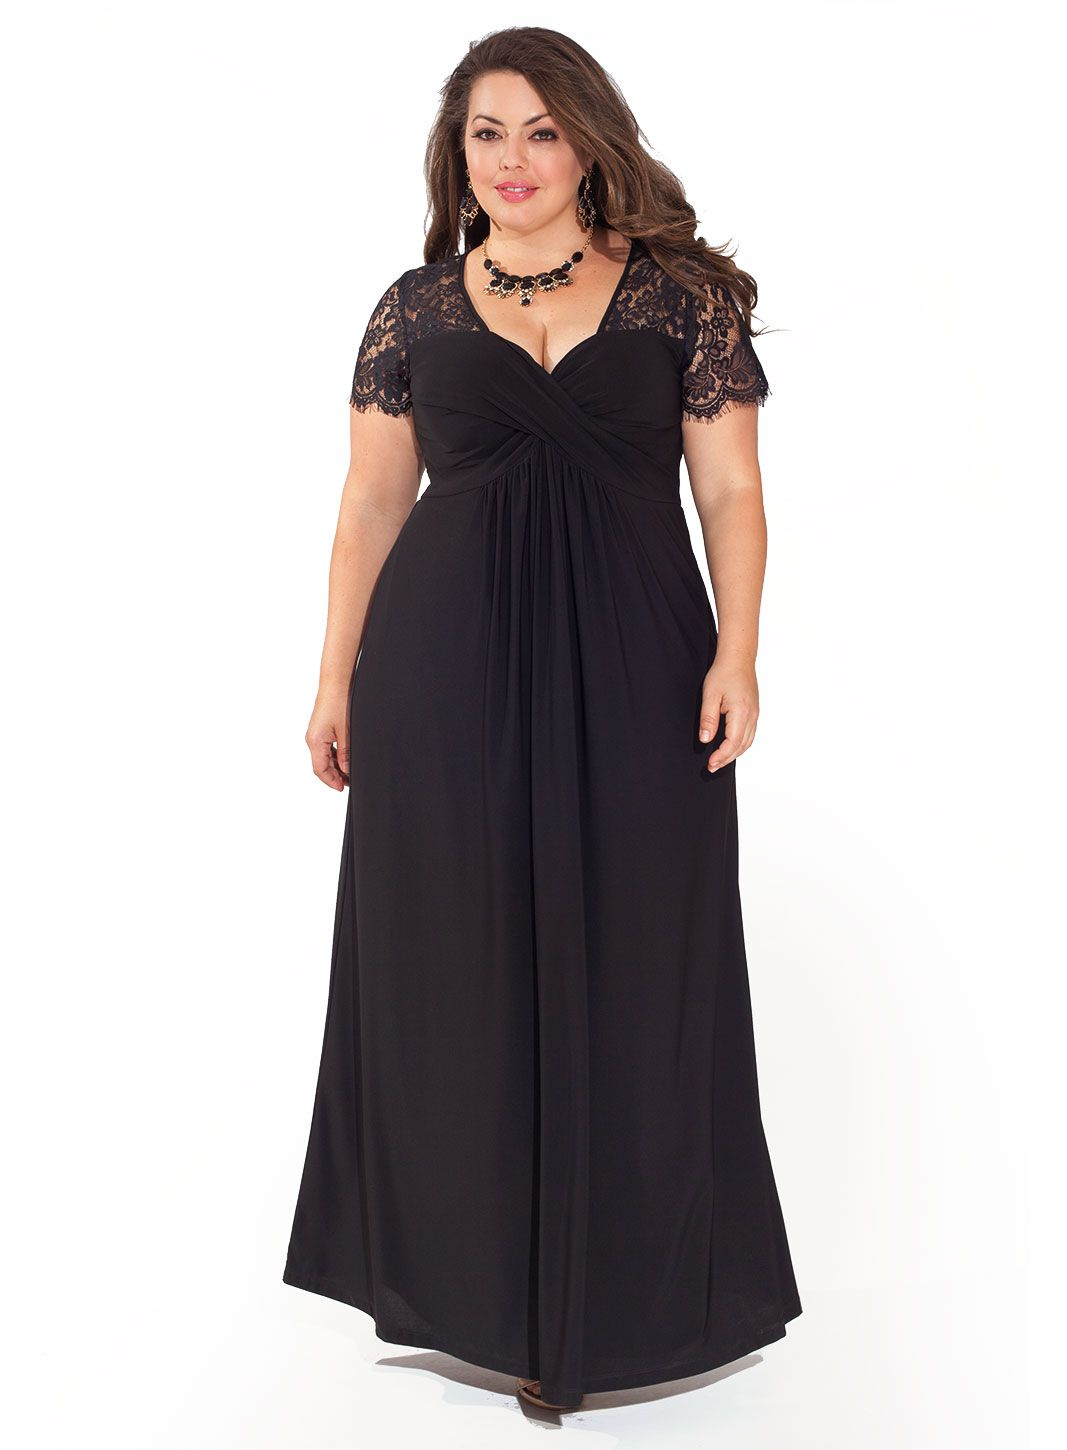 Vintage Style 1940s Plus Size Dresses | 1940s style, 1940s and Gowns